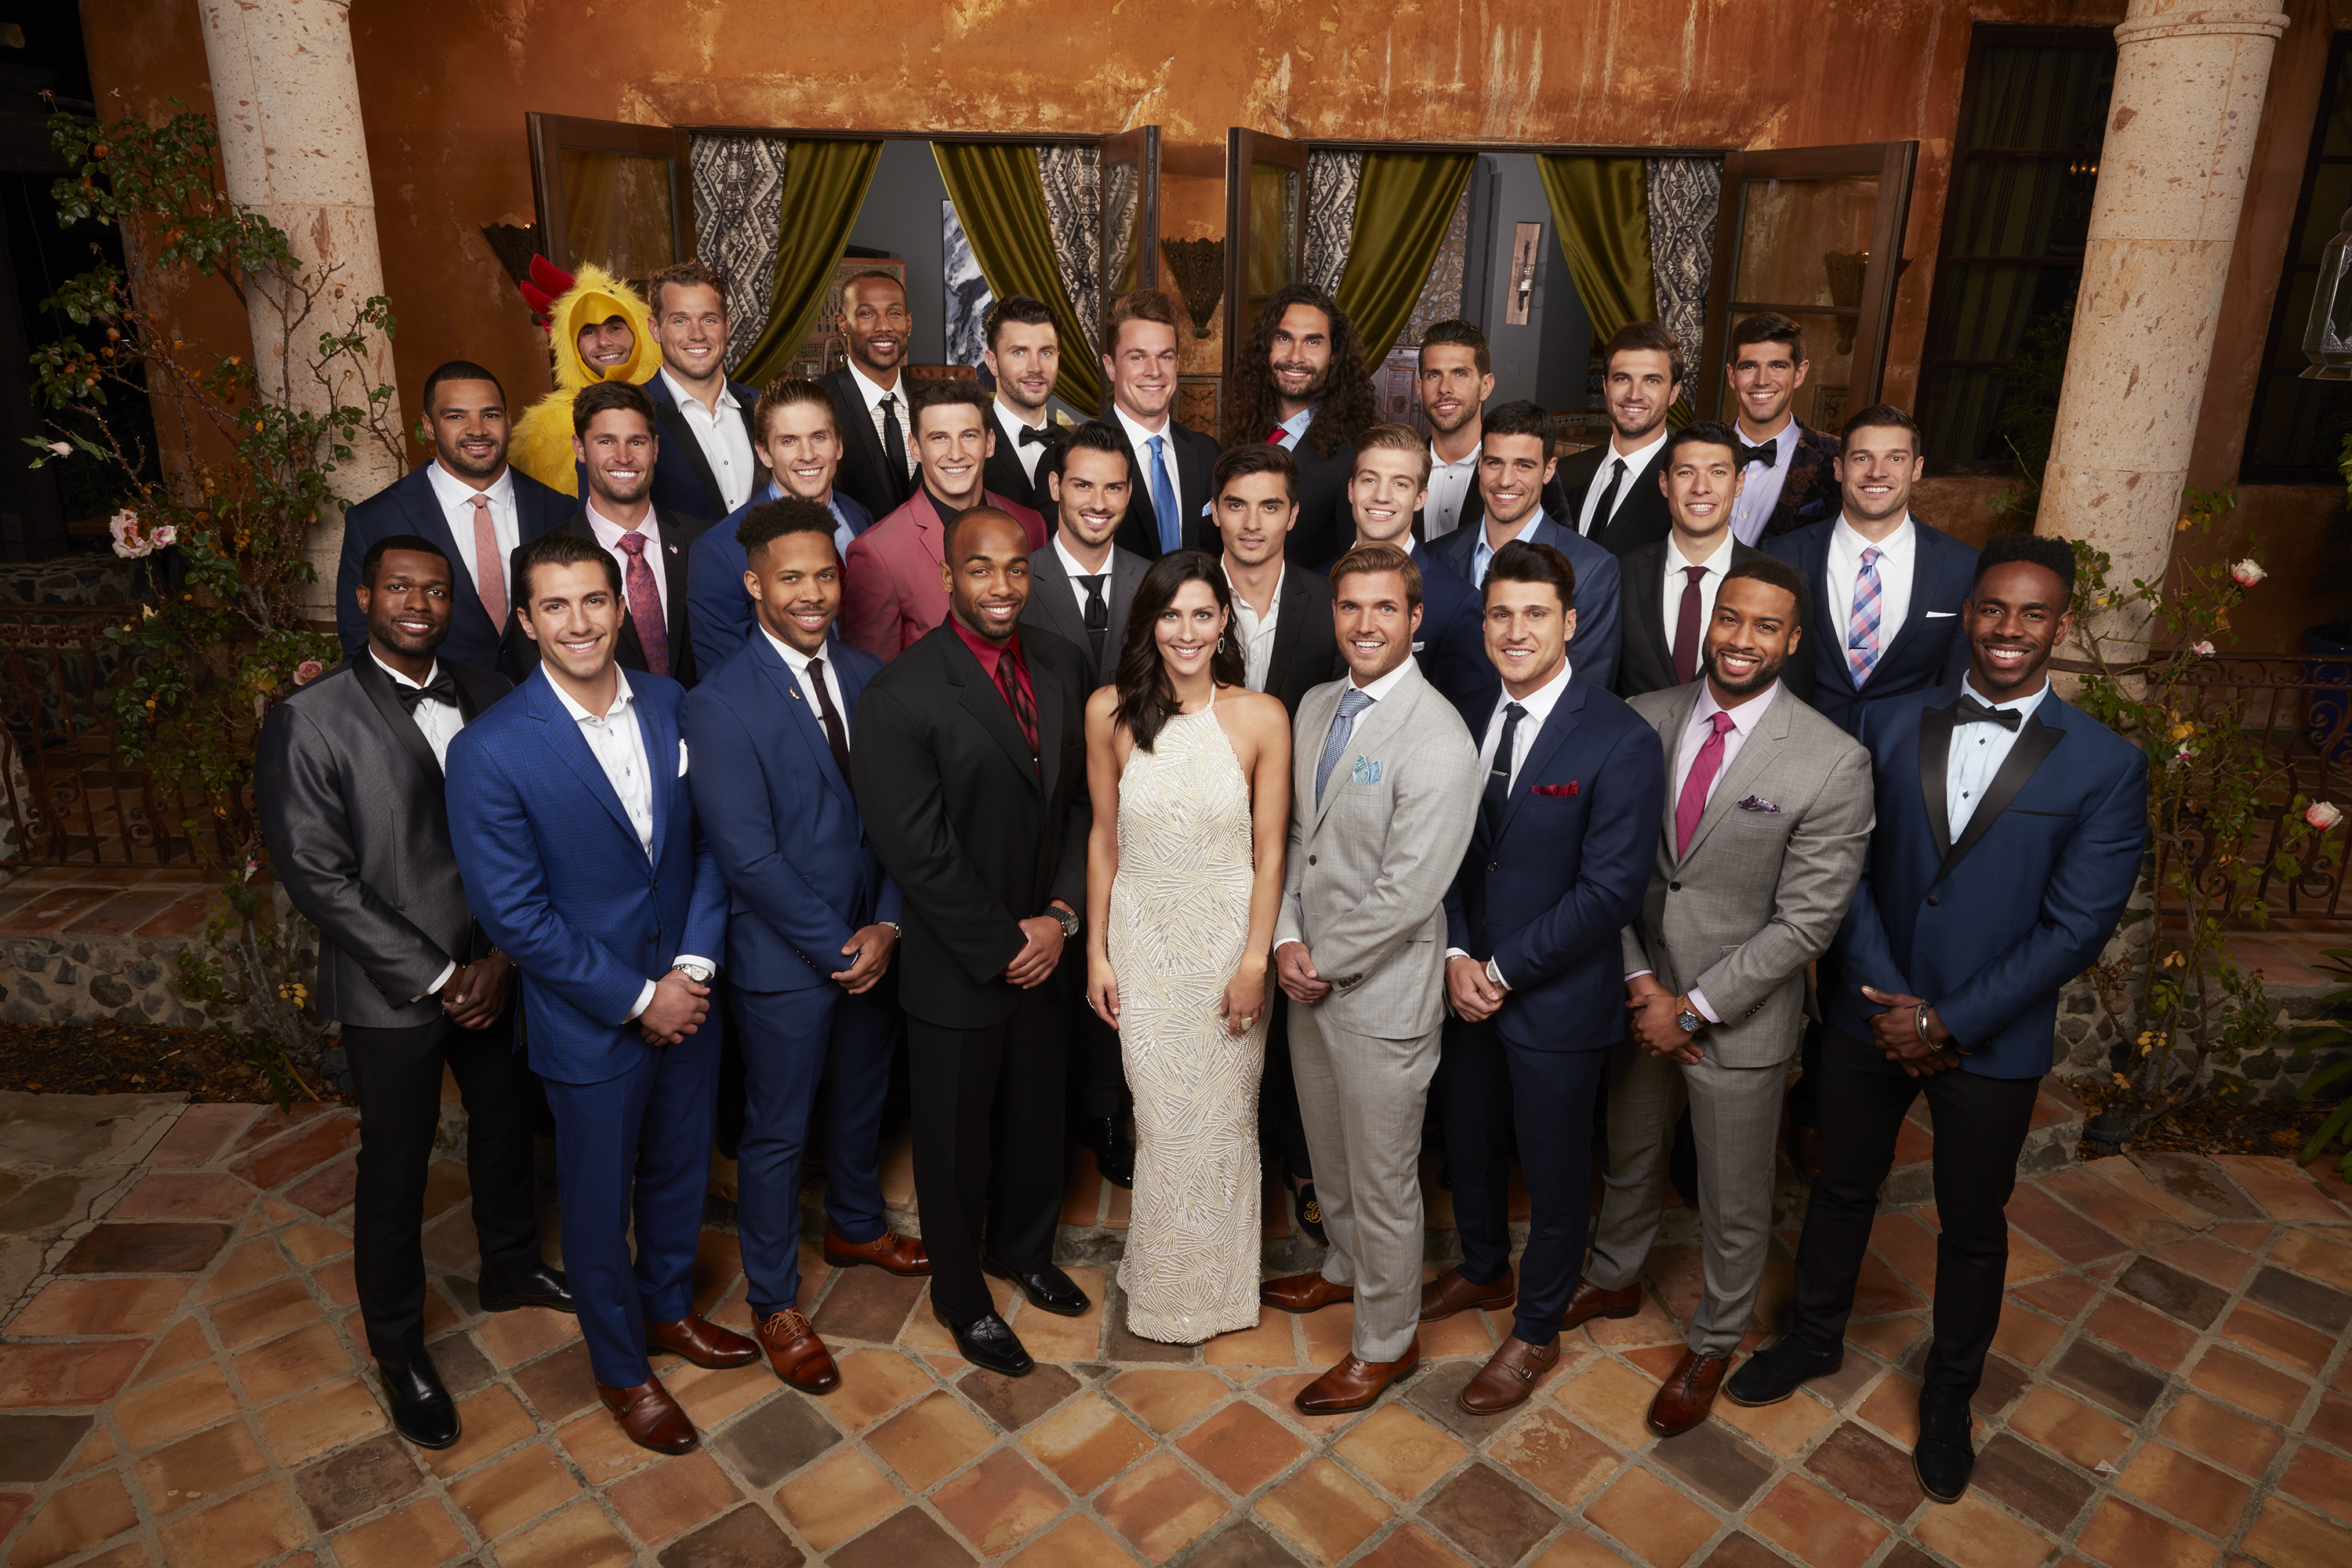 Bachelorette bios 2018, becca k bachelors, group, who went home on the bachelorette last night, kicked off, send home, rose, Premiere